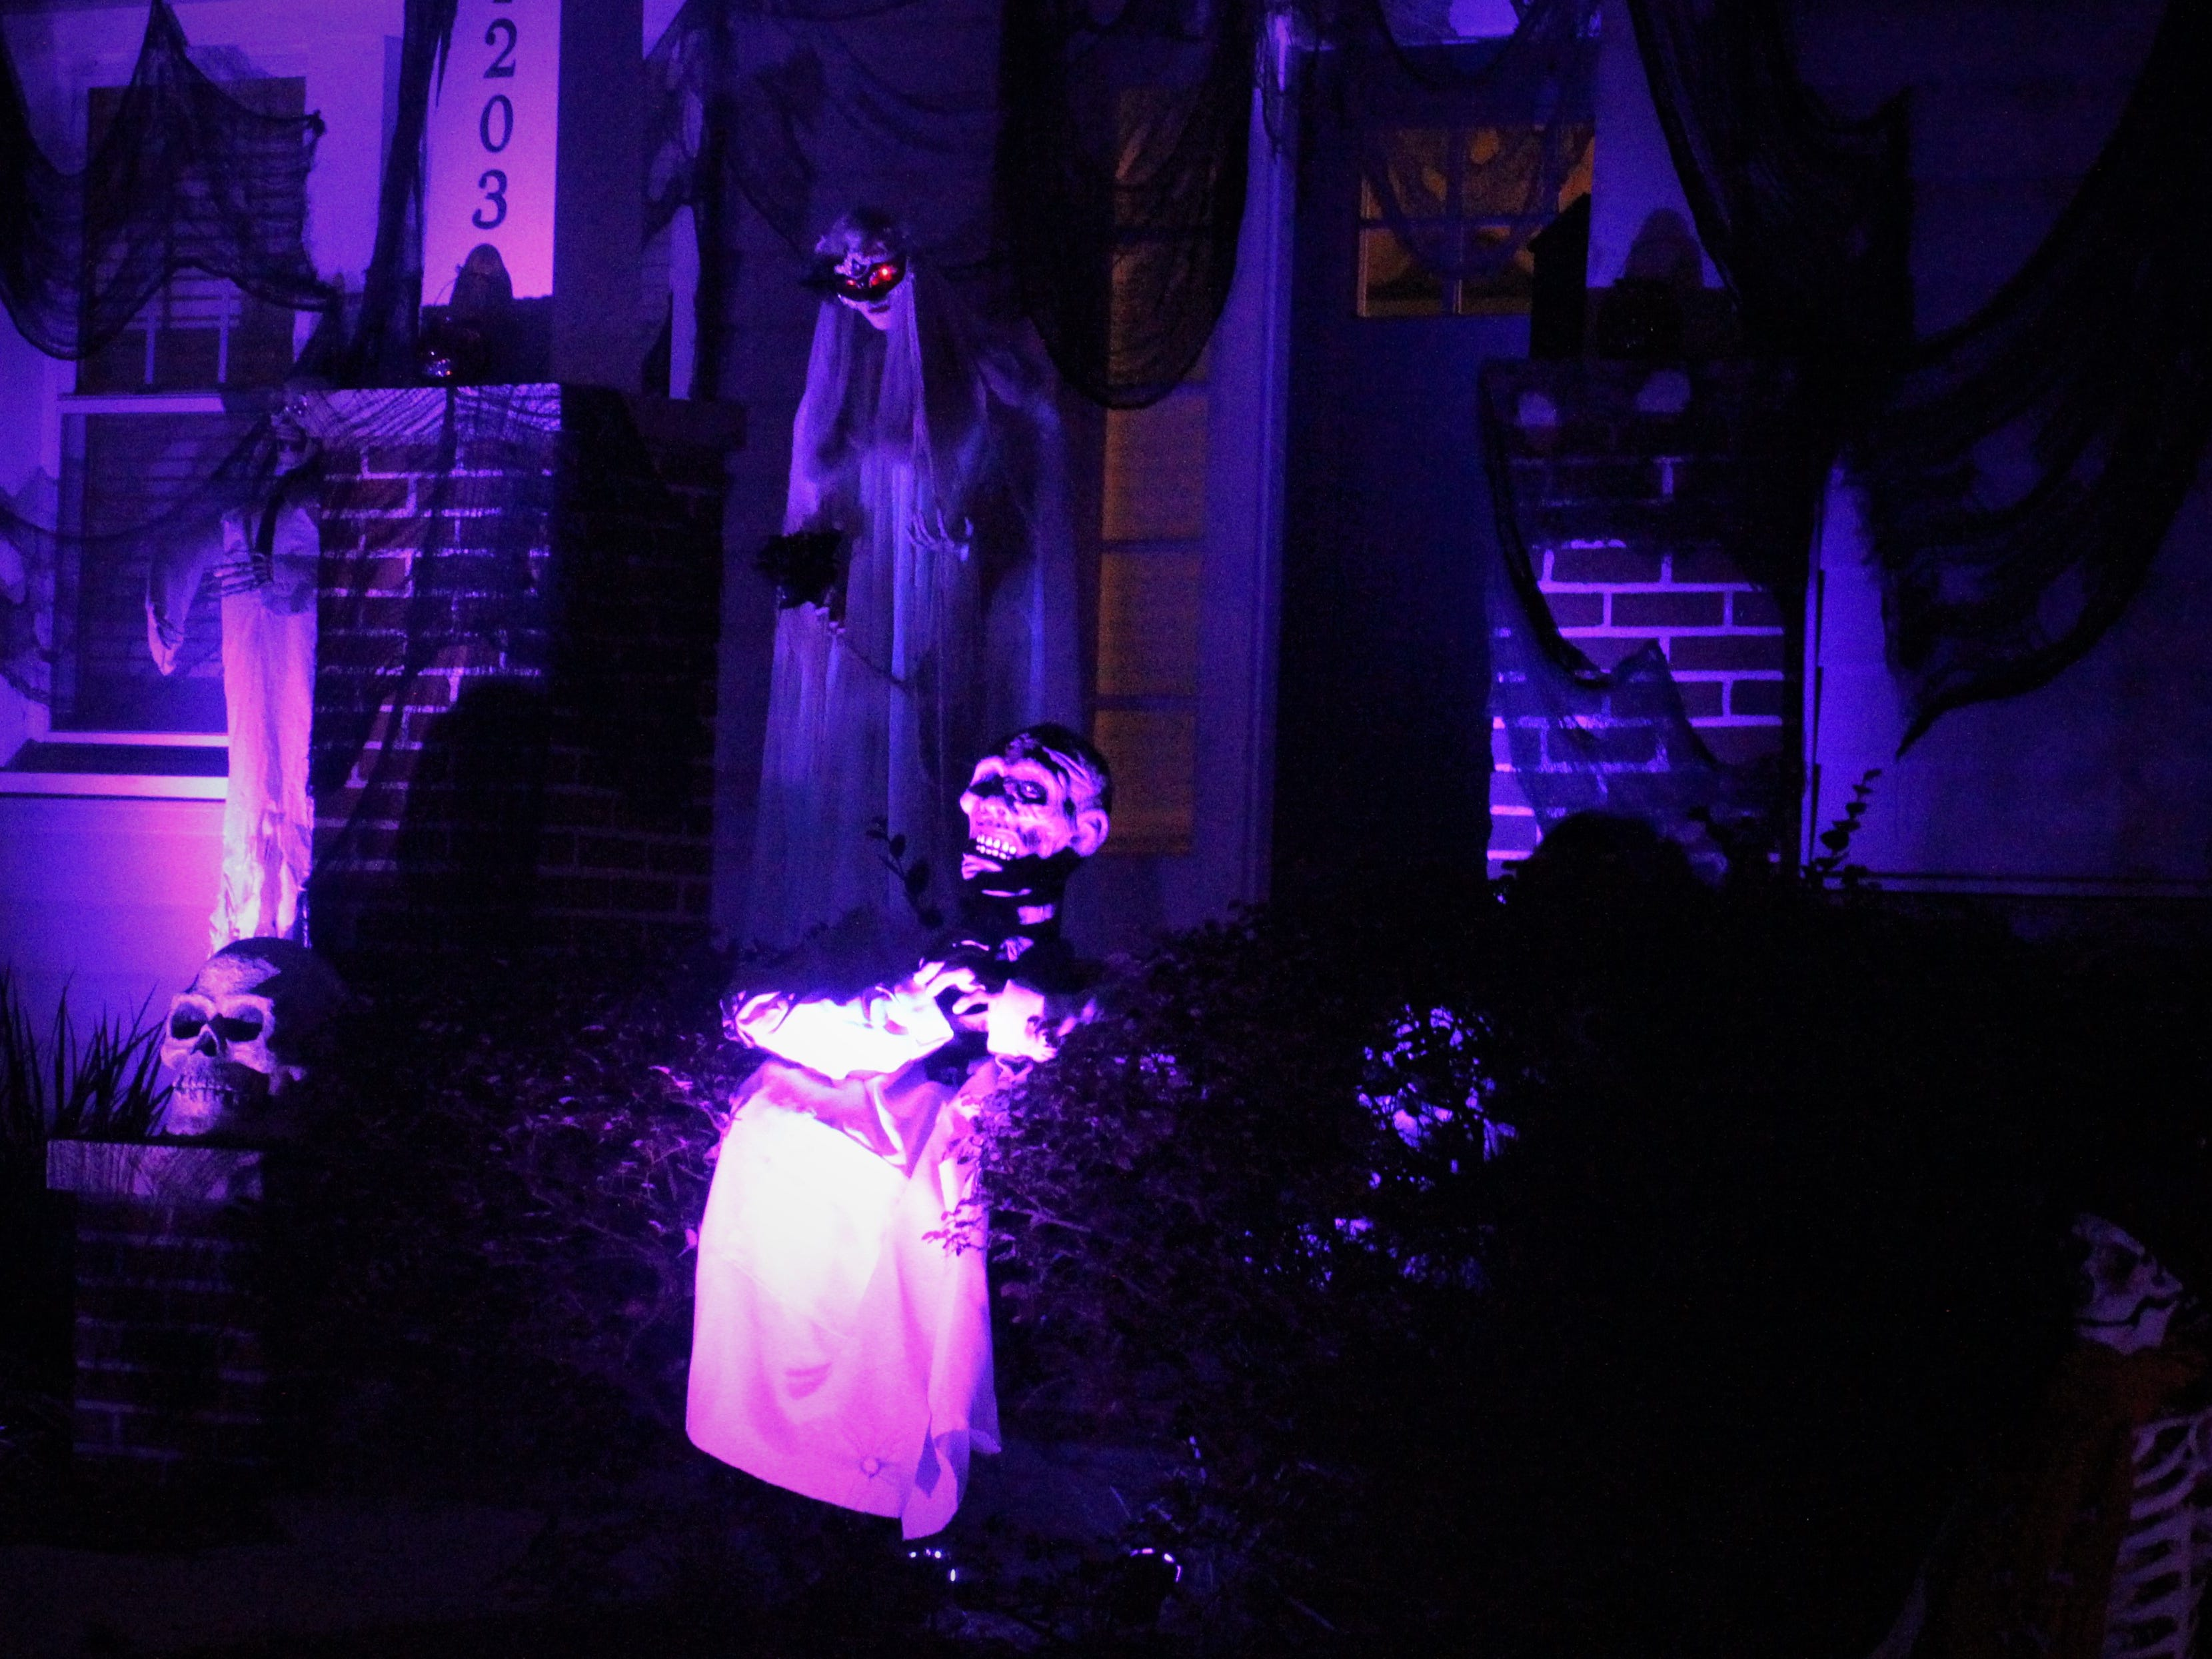 Betty Pearce's house at the corner of Beard Street and Terrace Street is one of many well-decorated Midtown homes for Halloween.